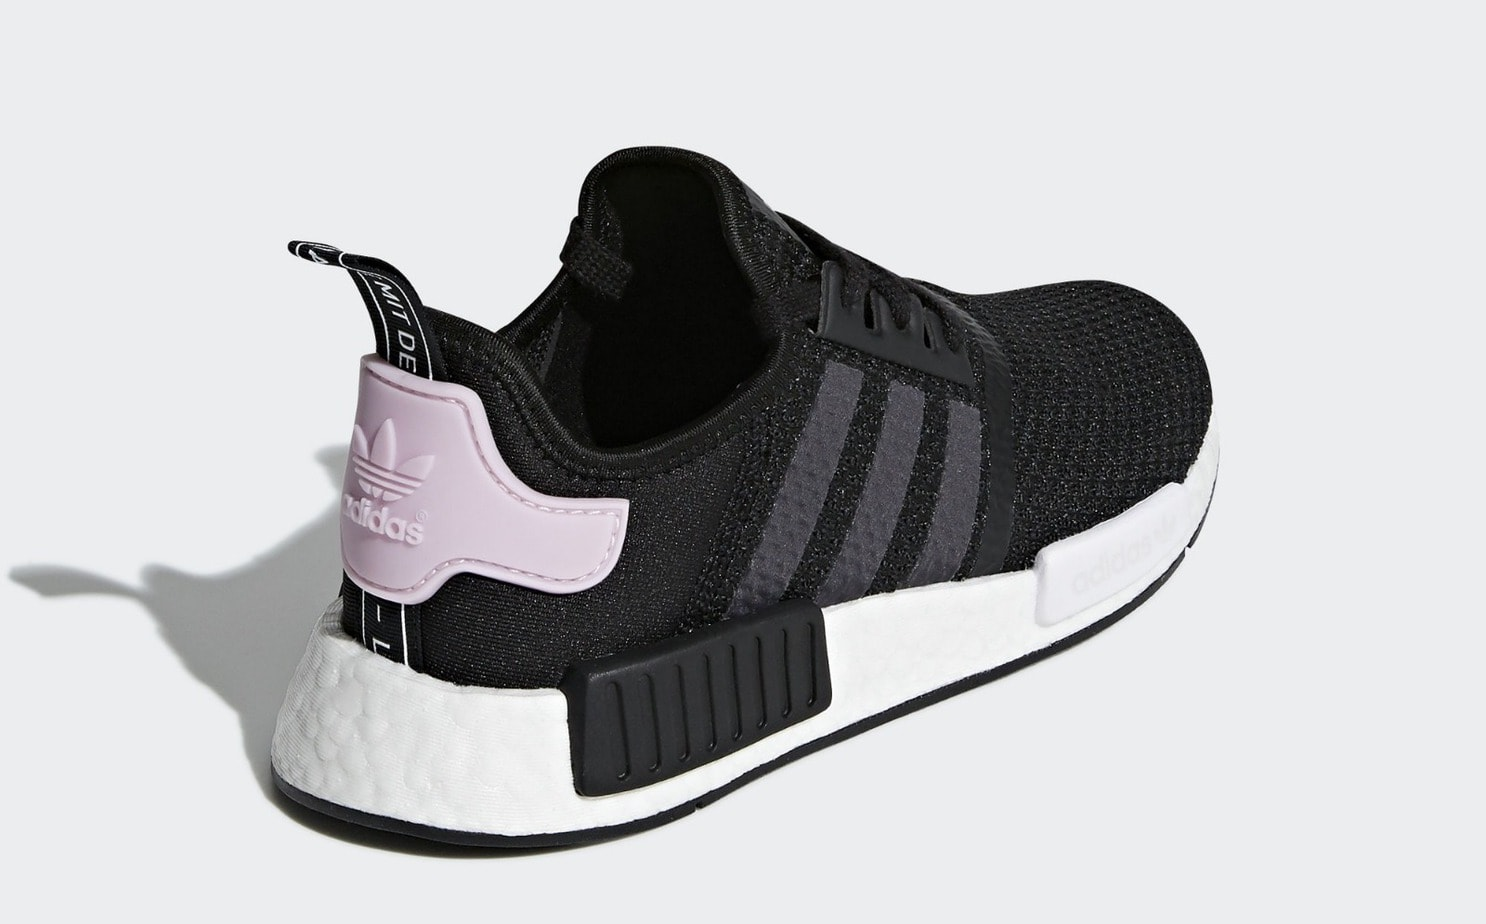 ab627df6f adidas NMD R1 Release Date  Coming Soon Price   130. Color  Core Black FTWR  White Orchid Tint